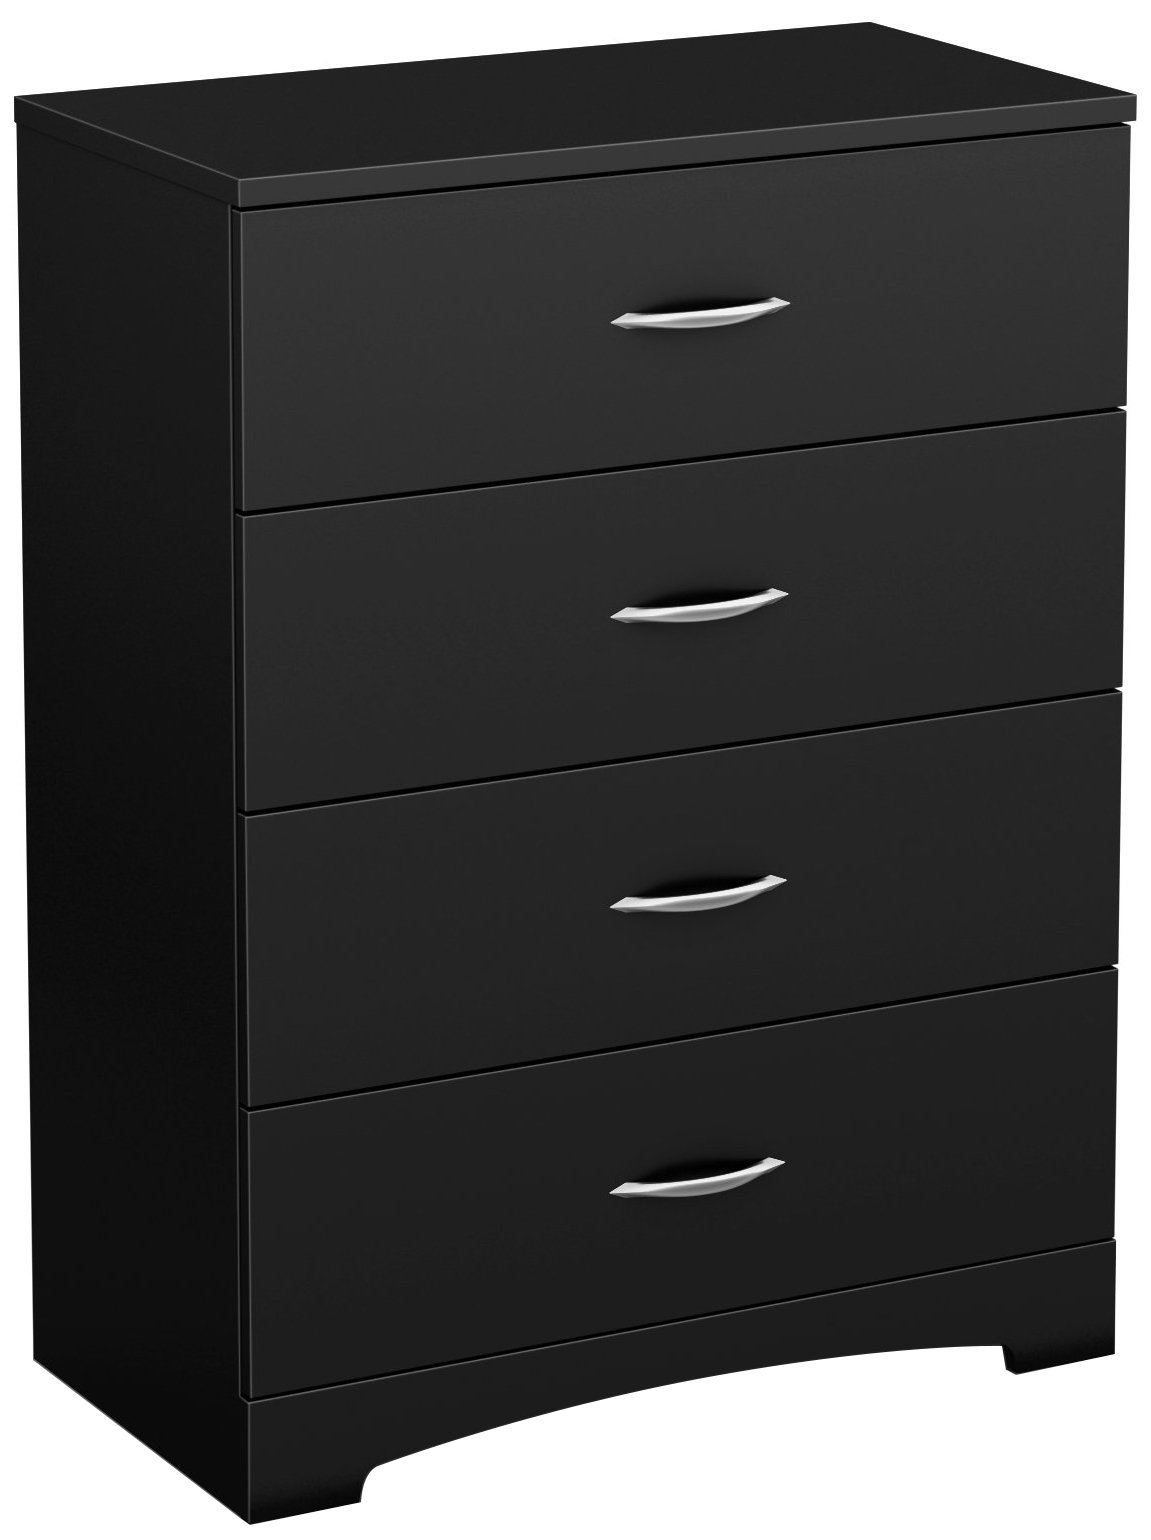 South Shore Step One 4-Drawer Dresser, Pure Black with Matte Nickel Handles by South Shore